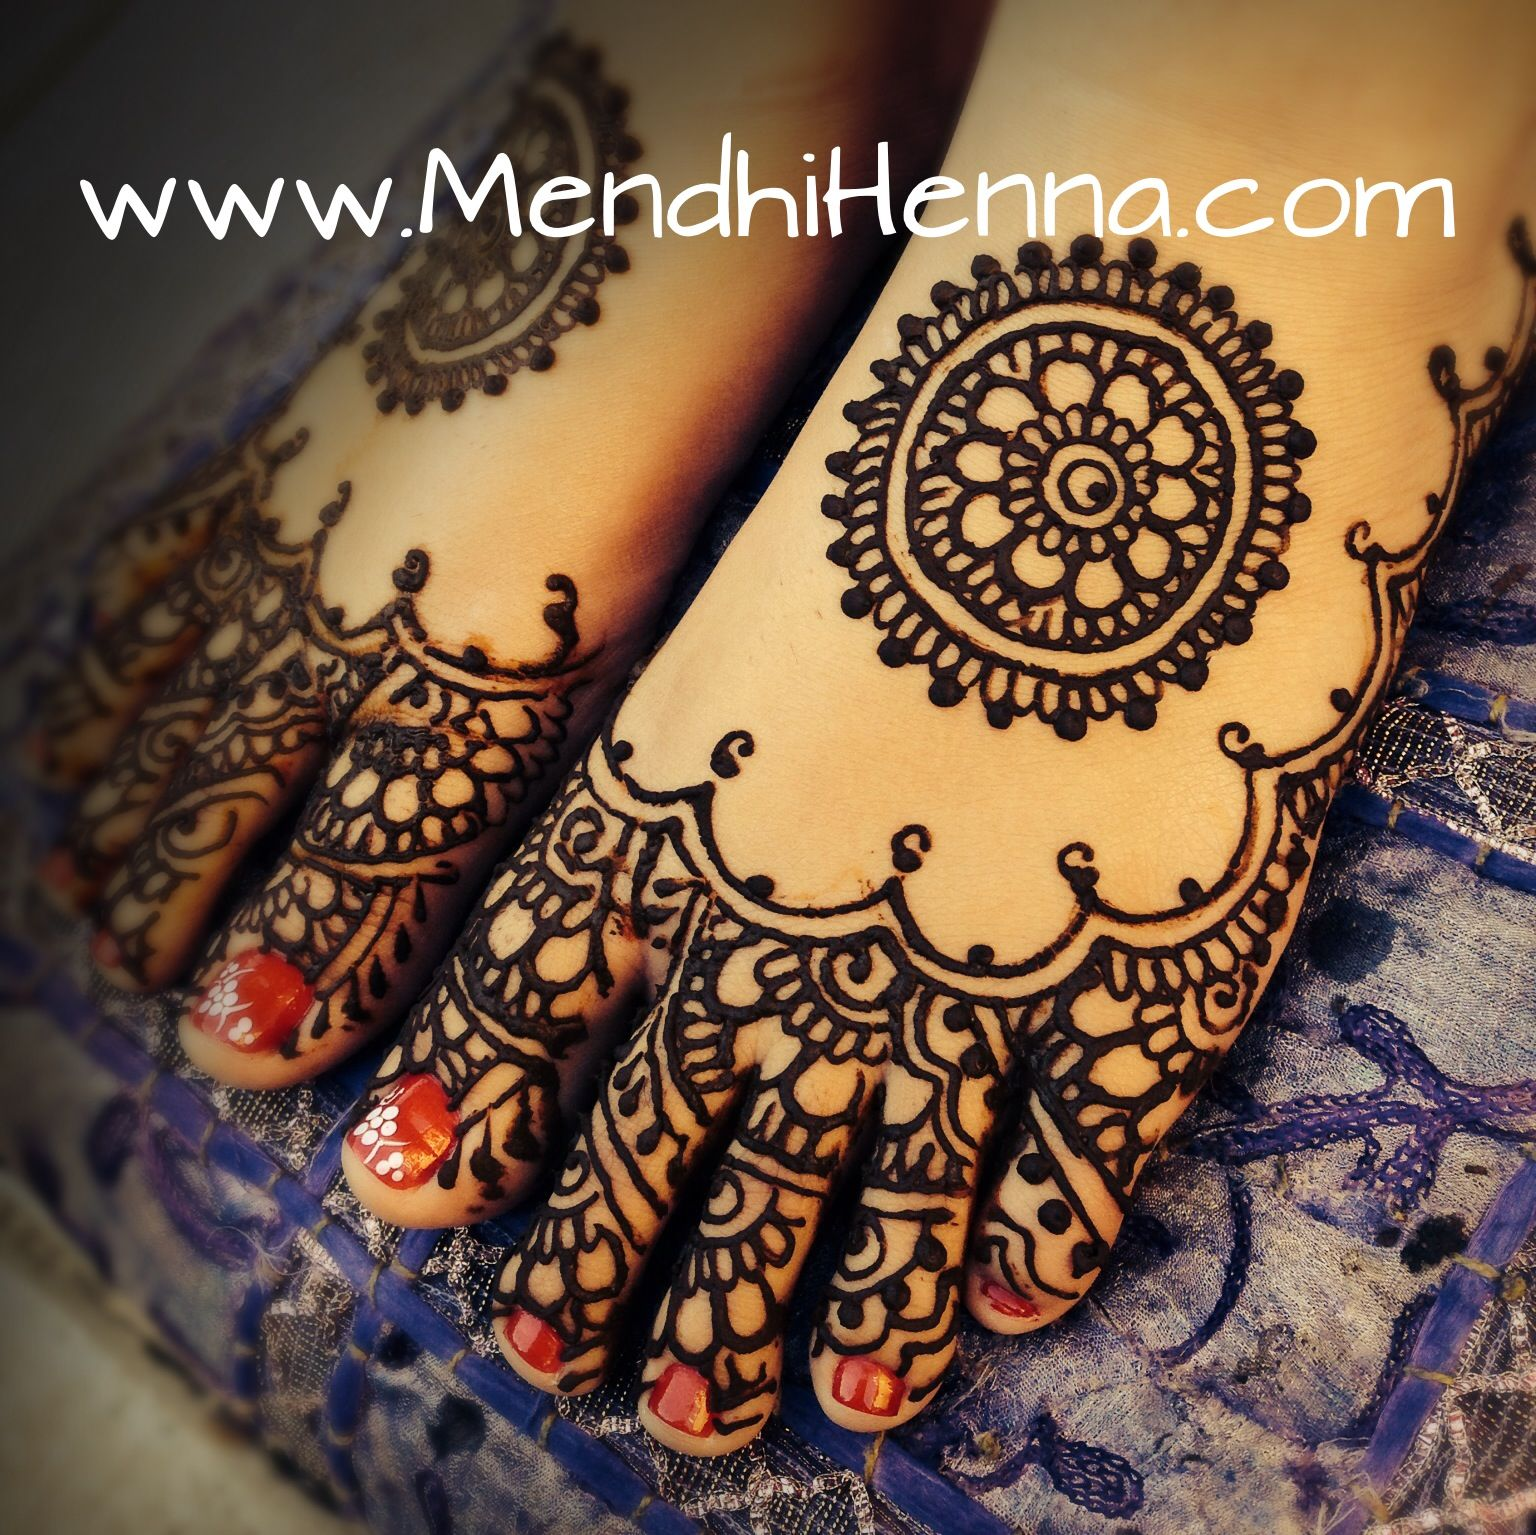 Now taking henna Bookings for 2014